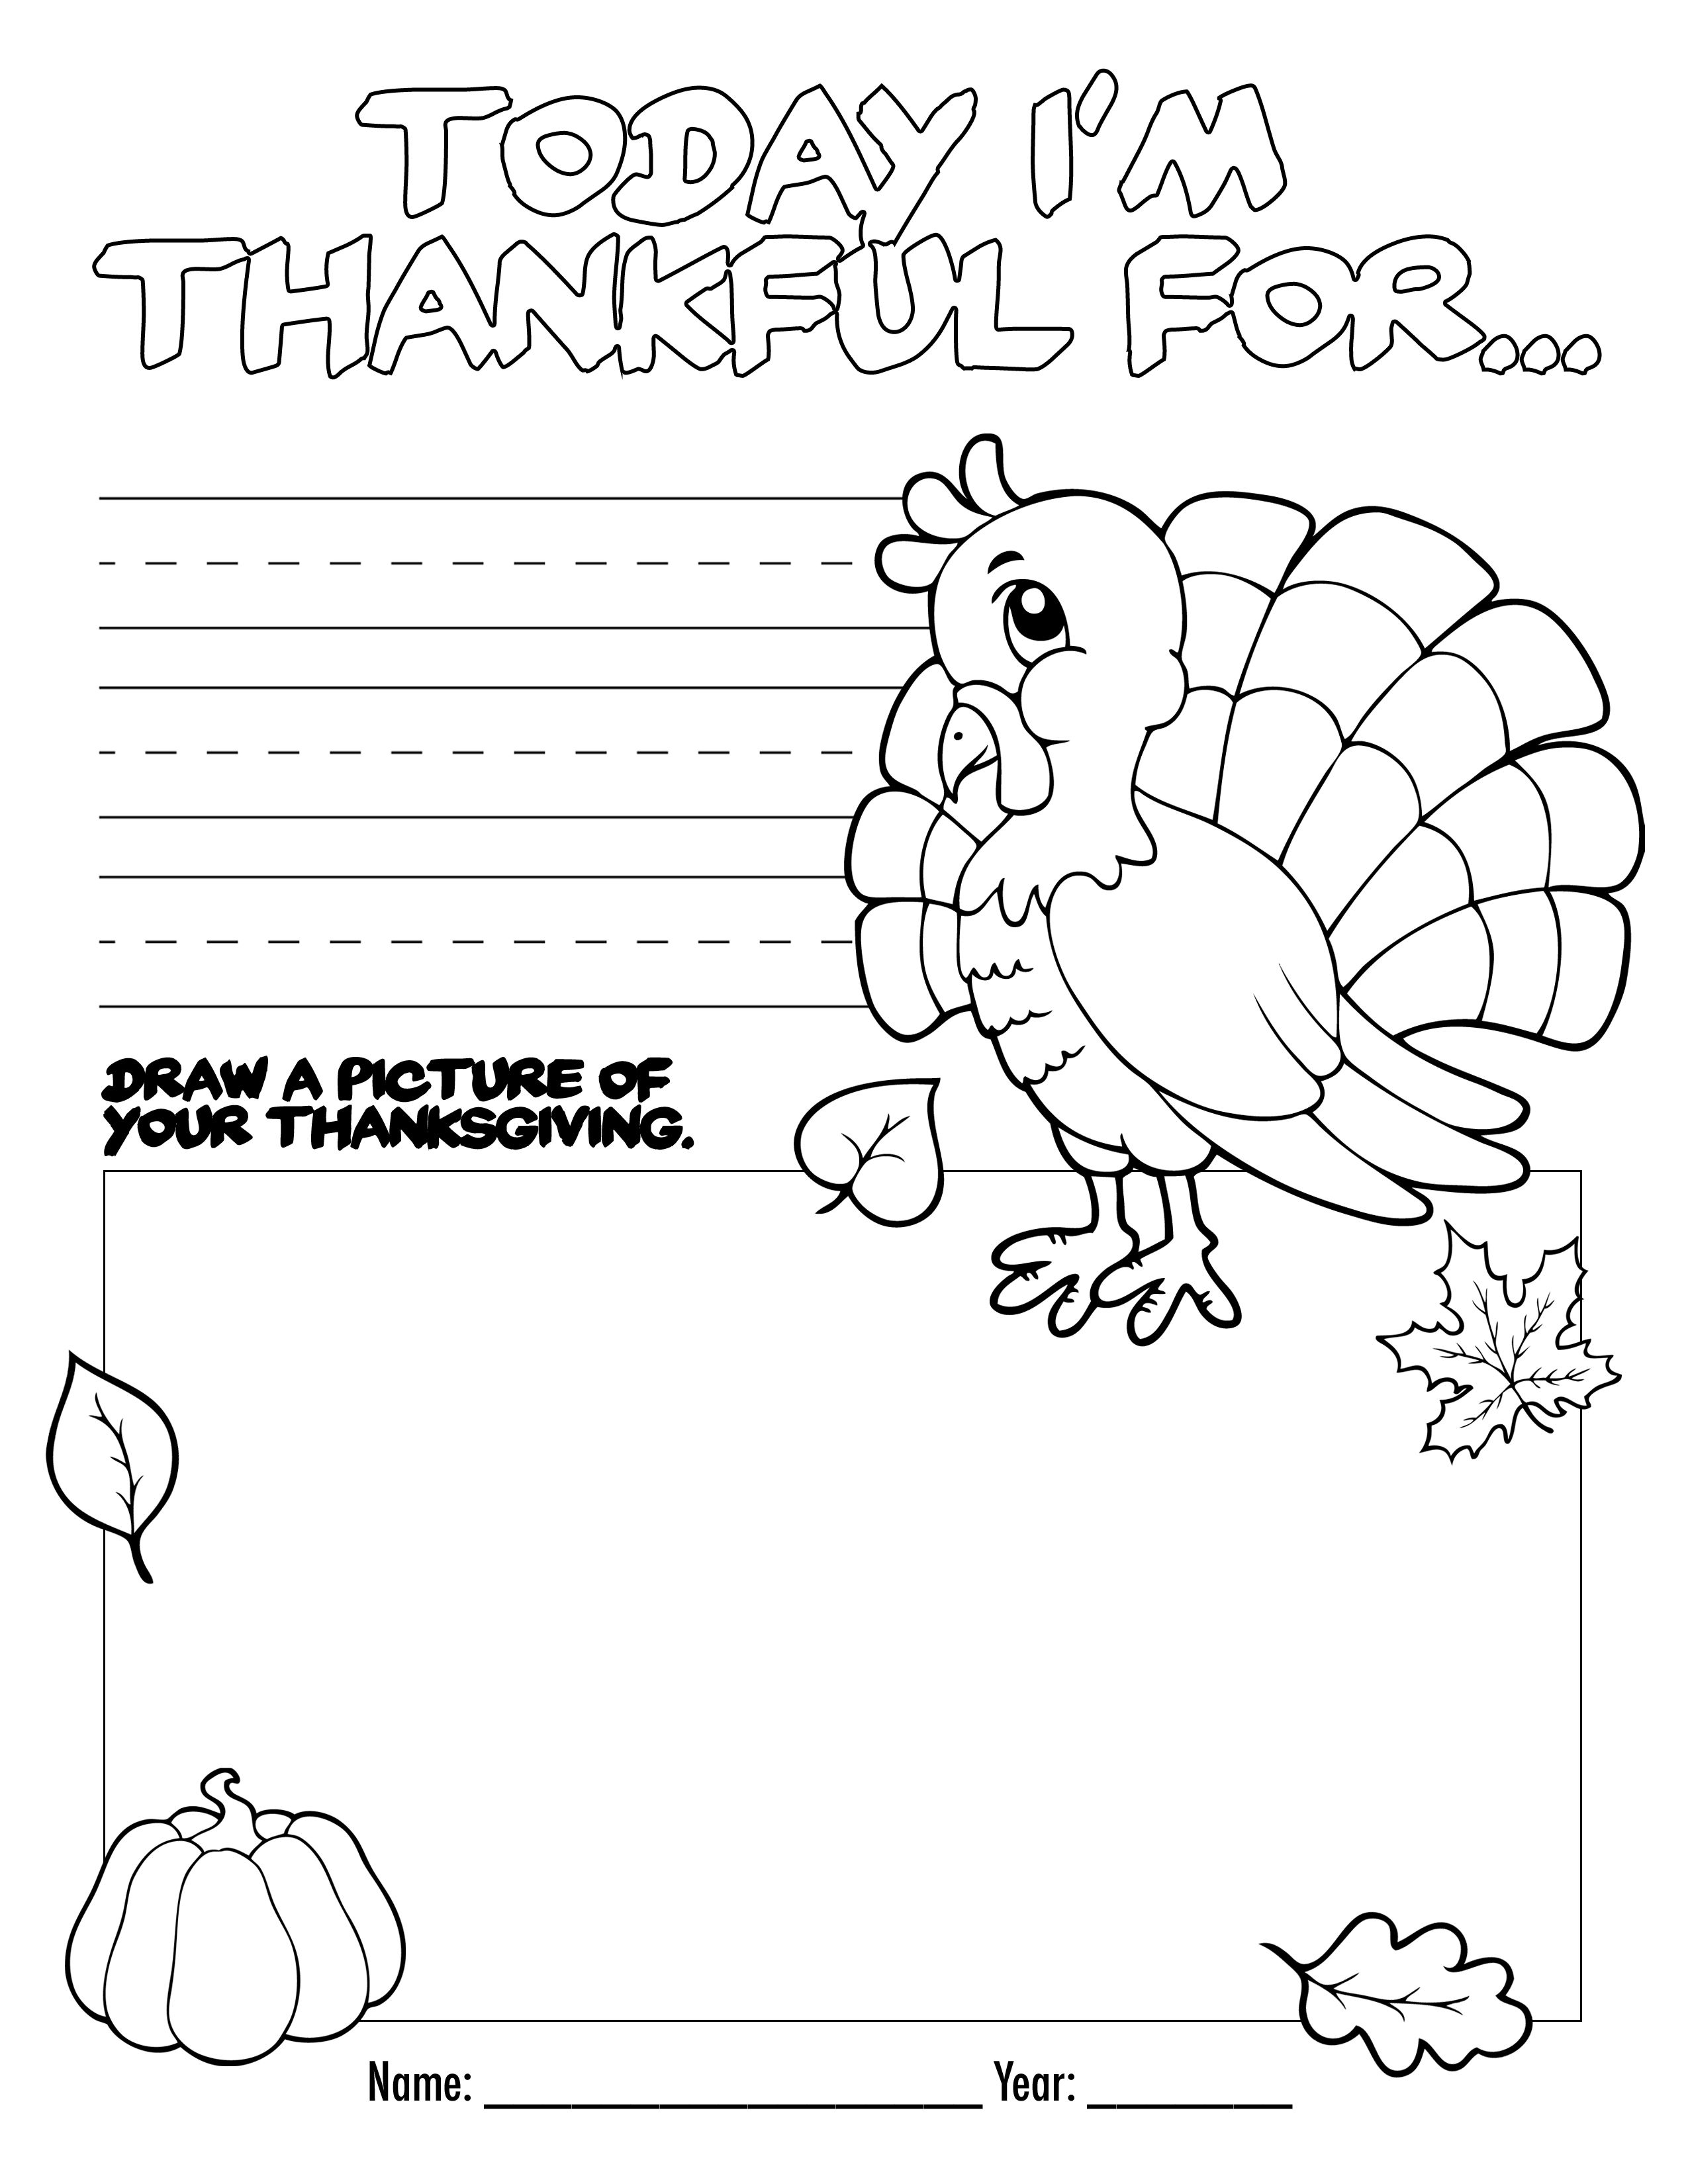 Thanksgiving Coloring Book Free Printable For The Kids!   Bloggers - Free Printable Kindergarten Thanksgiving Activities